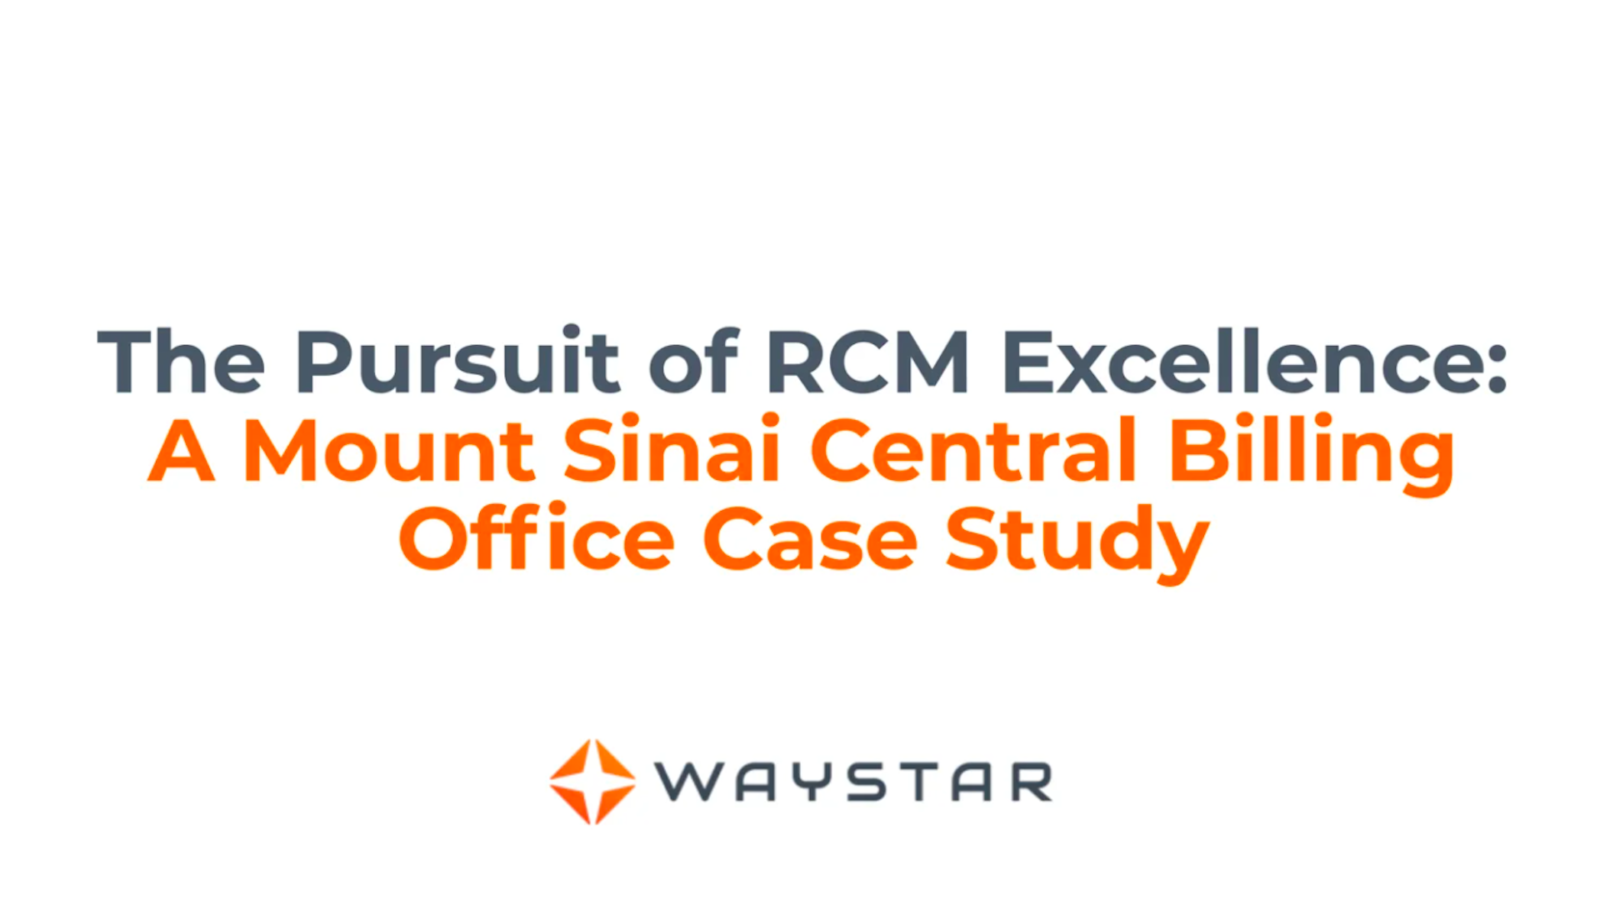 The Pursuit of RCM Excellence: A Mount Sinai Central Billing Office Case Study